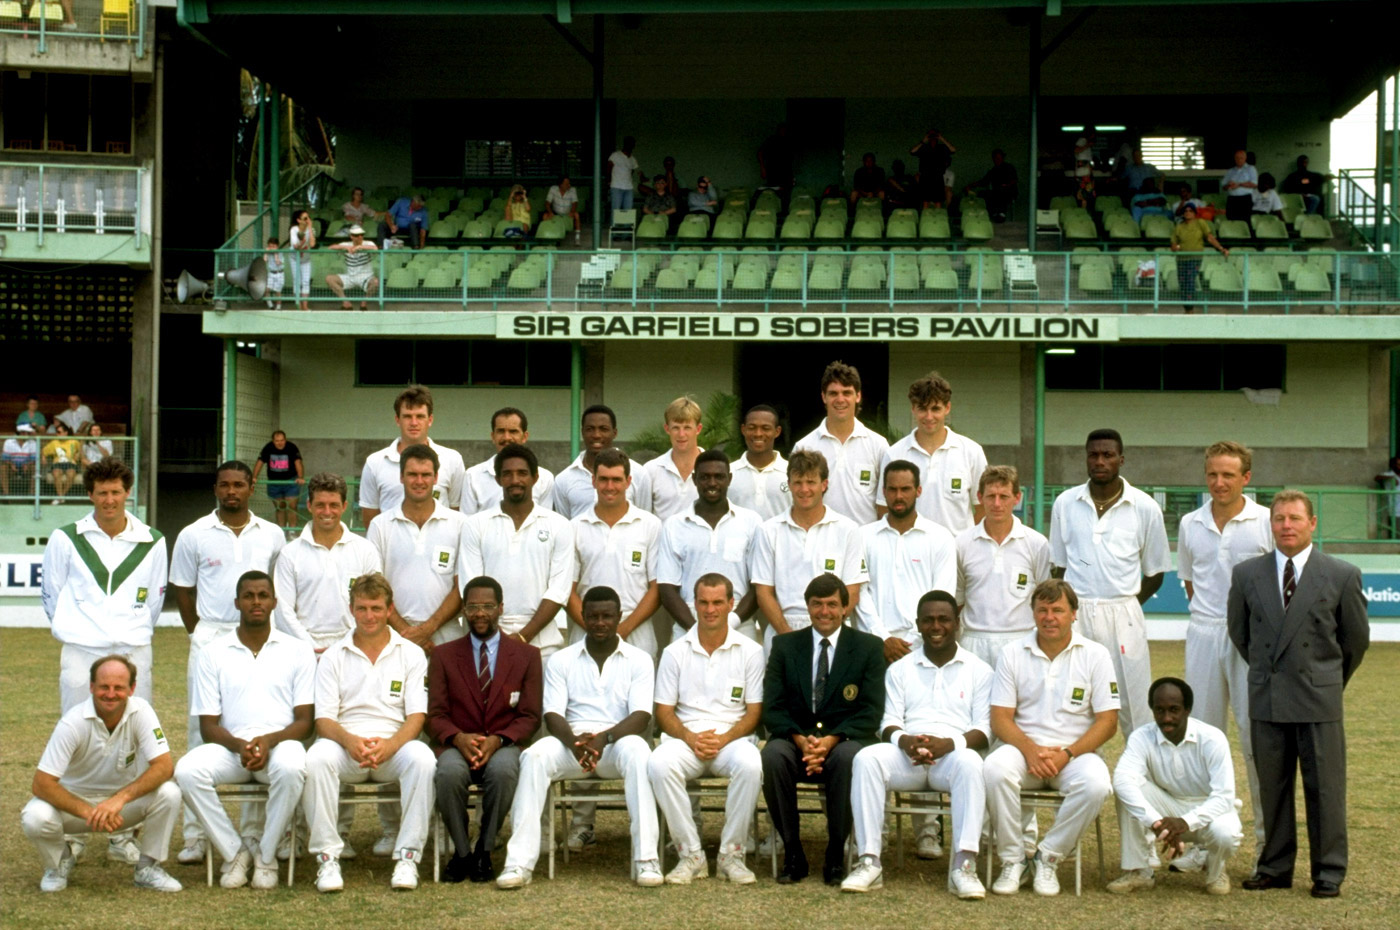 The West Indian and South African squads before the historic match